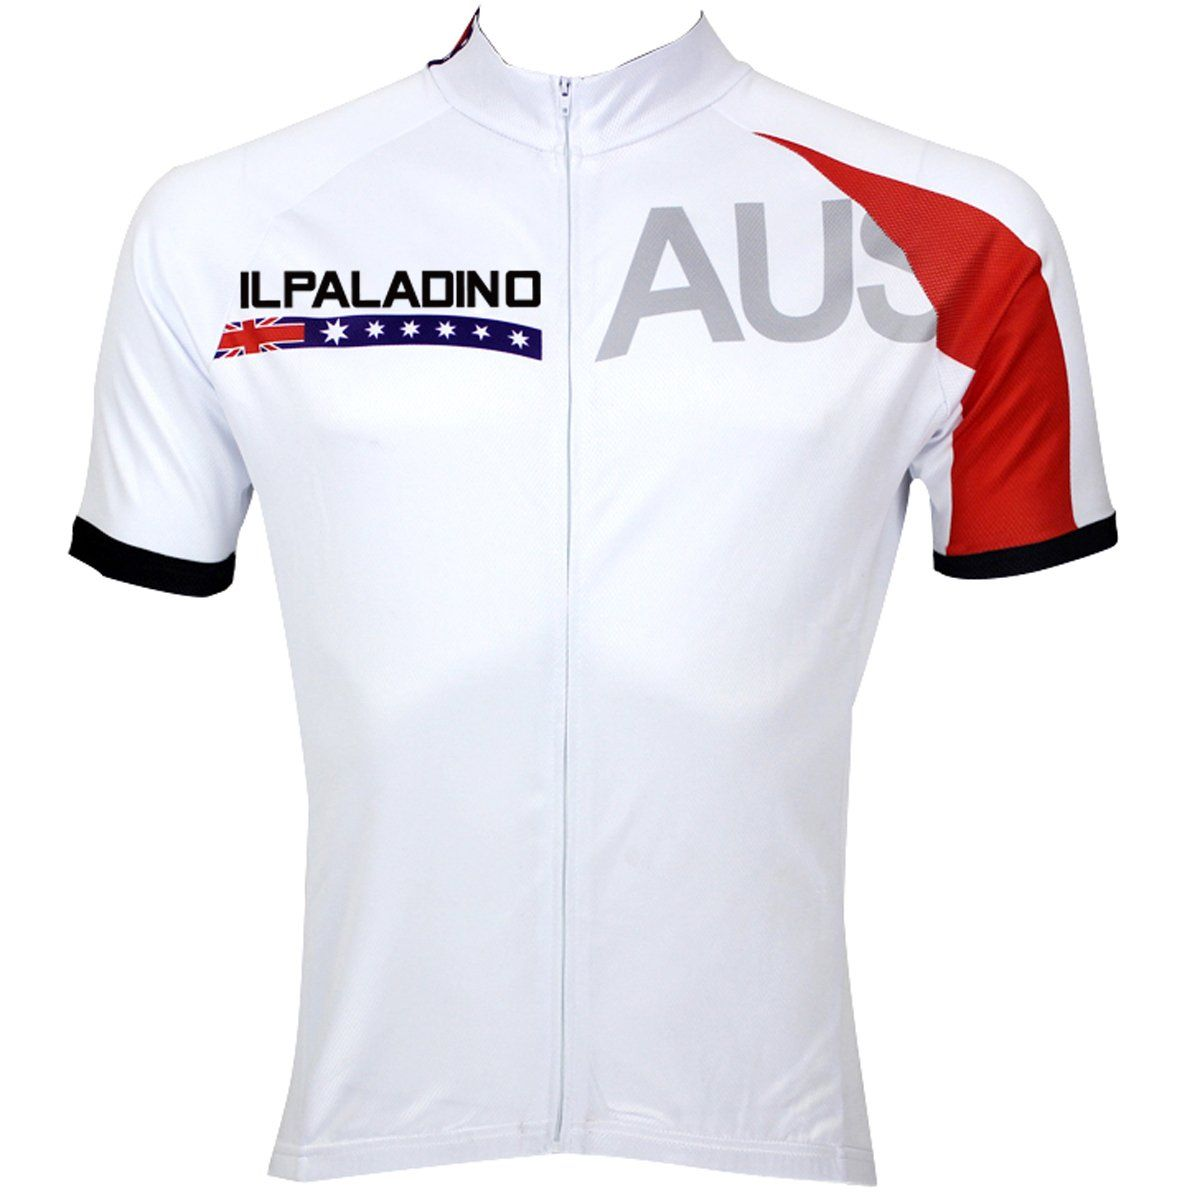 42efe7e93 ILPALADINO Australia Simple White Man s Short-sleeve Cycling Jersey Team  Jacket T-shirt Summer Spring Autumn Clothes Sportswear Racing Apparel  NO.053 ...